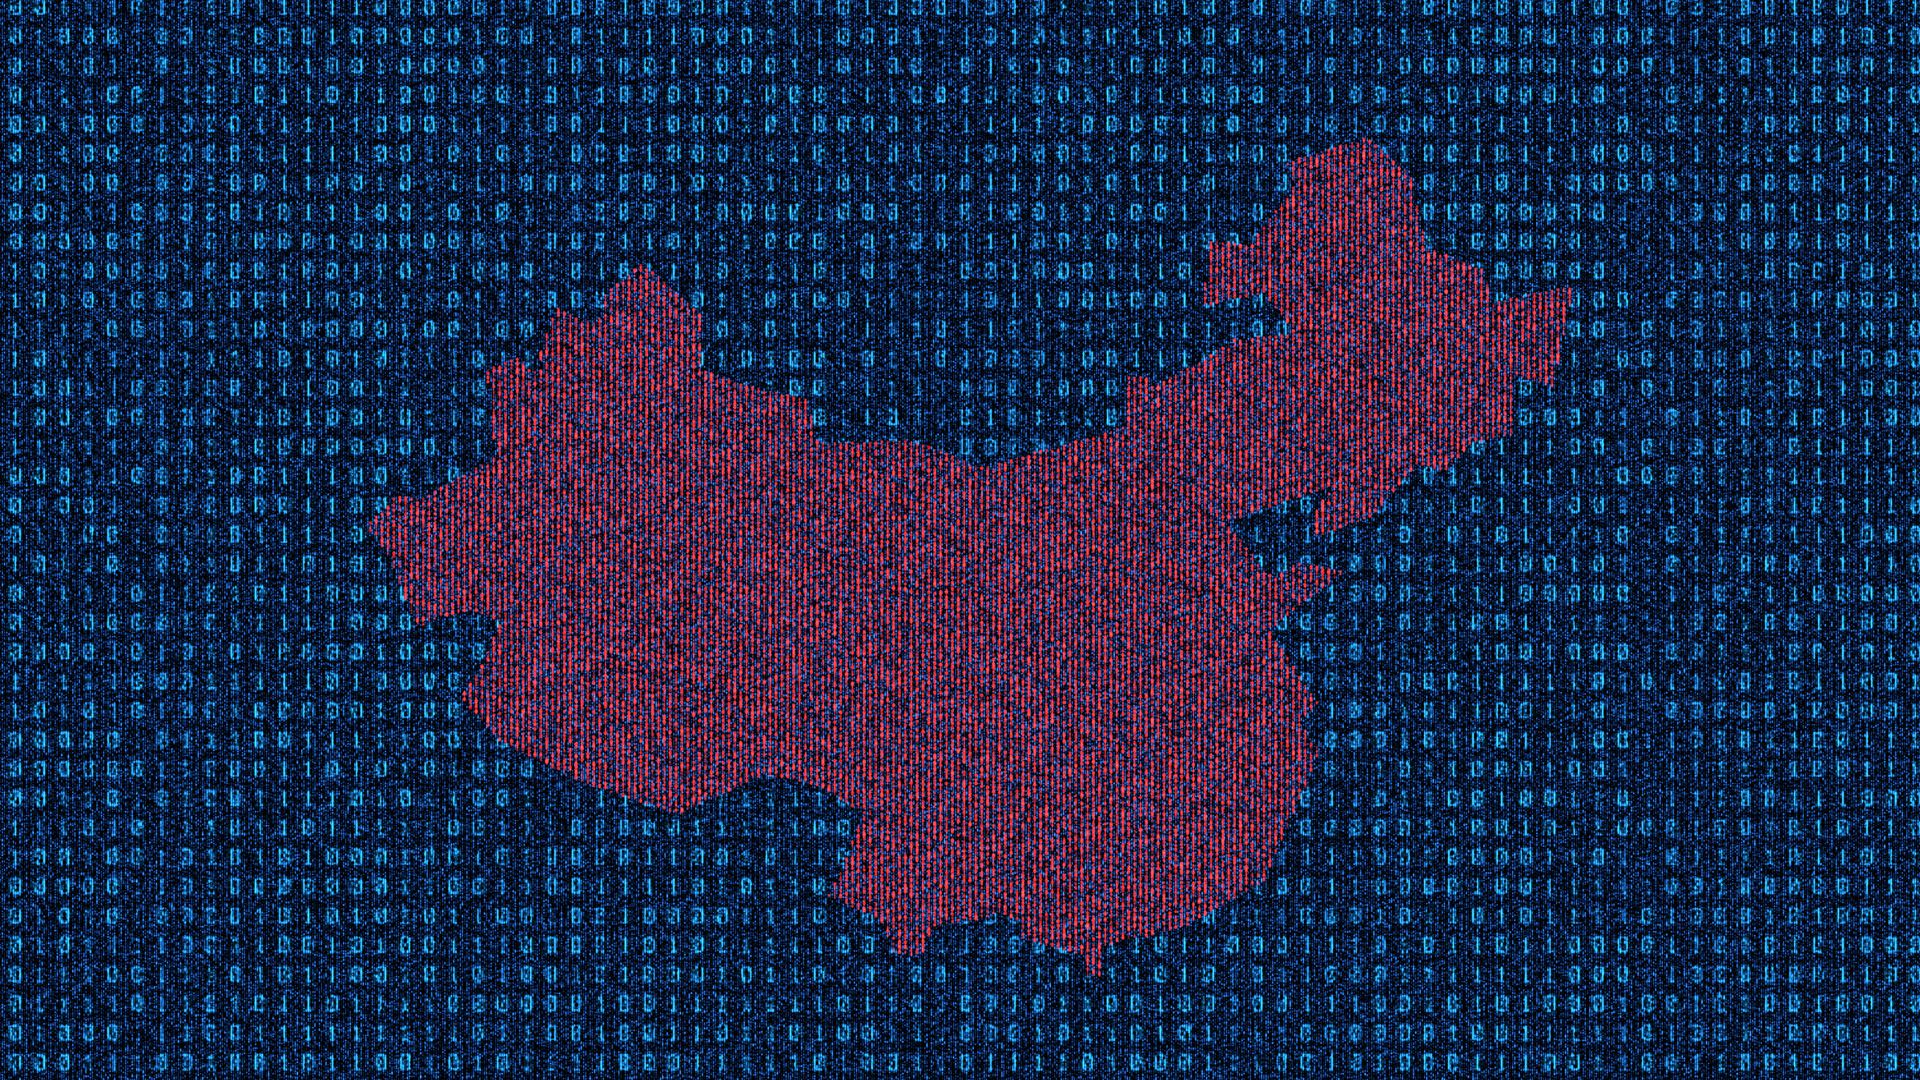 Illustration of a map of china in computer code